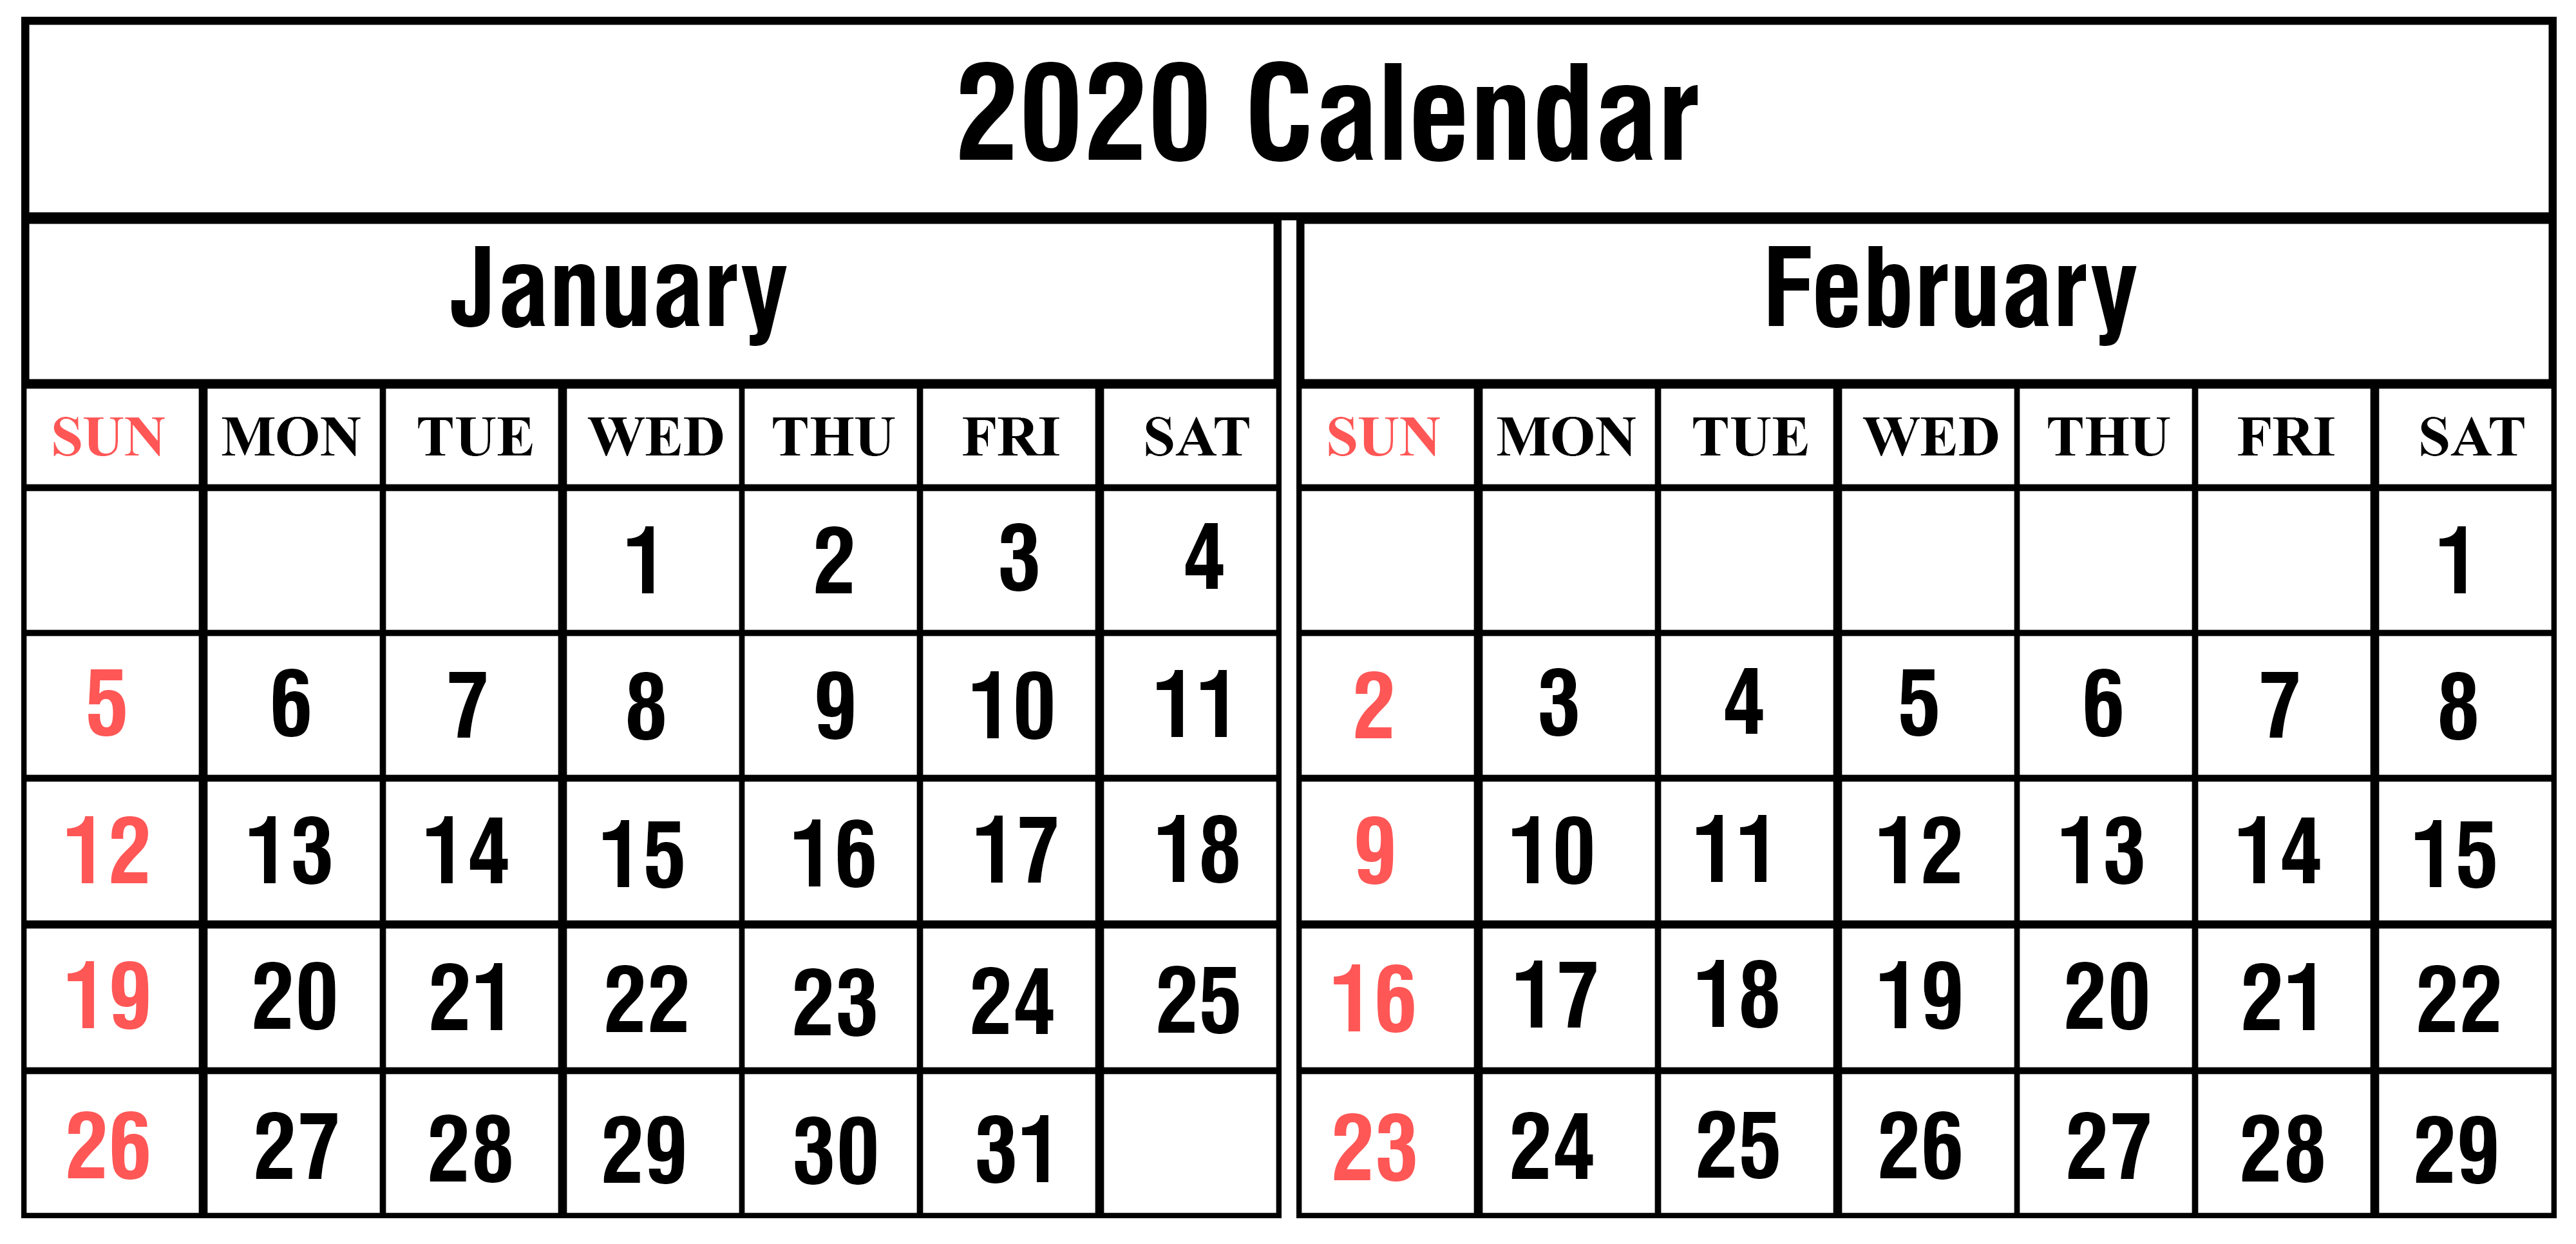 January February 2020 Calendar Daily Calendar Printable | 12 throughout February 2020 Daily Calendar